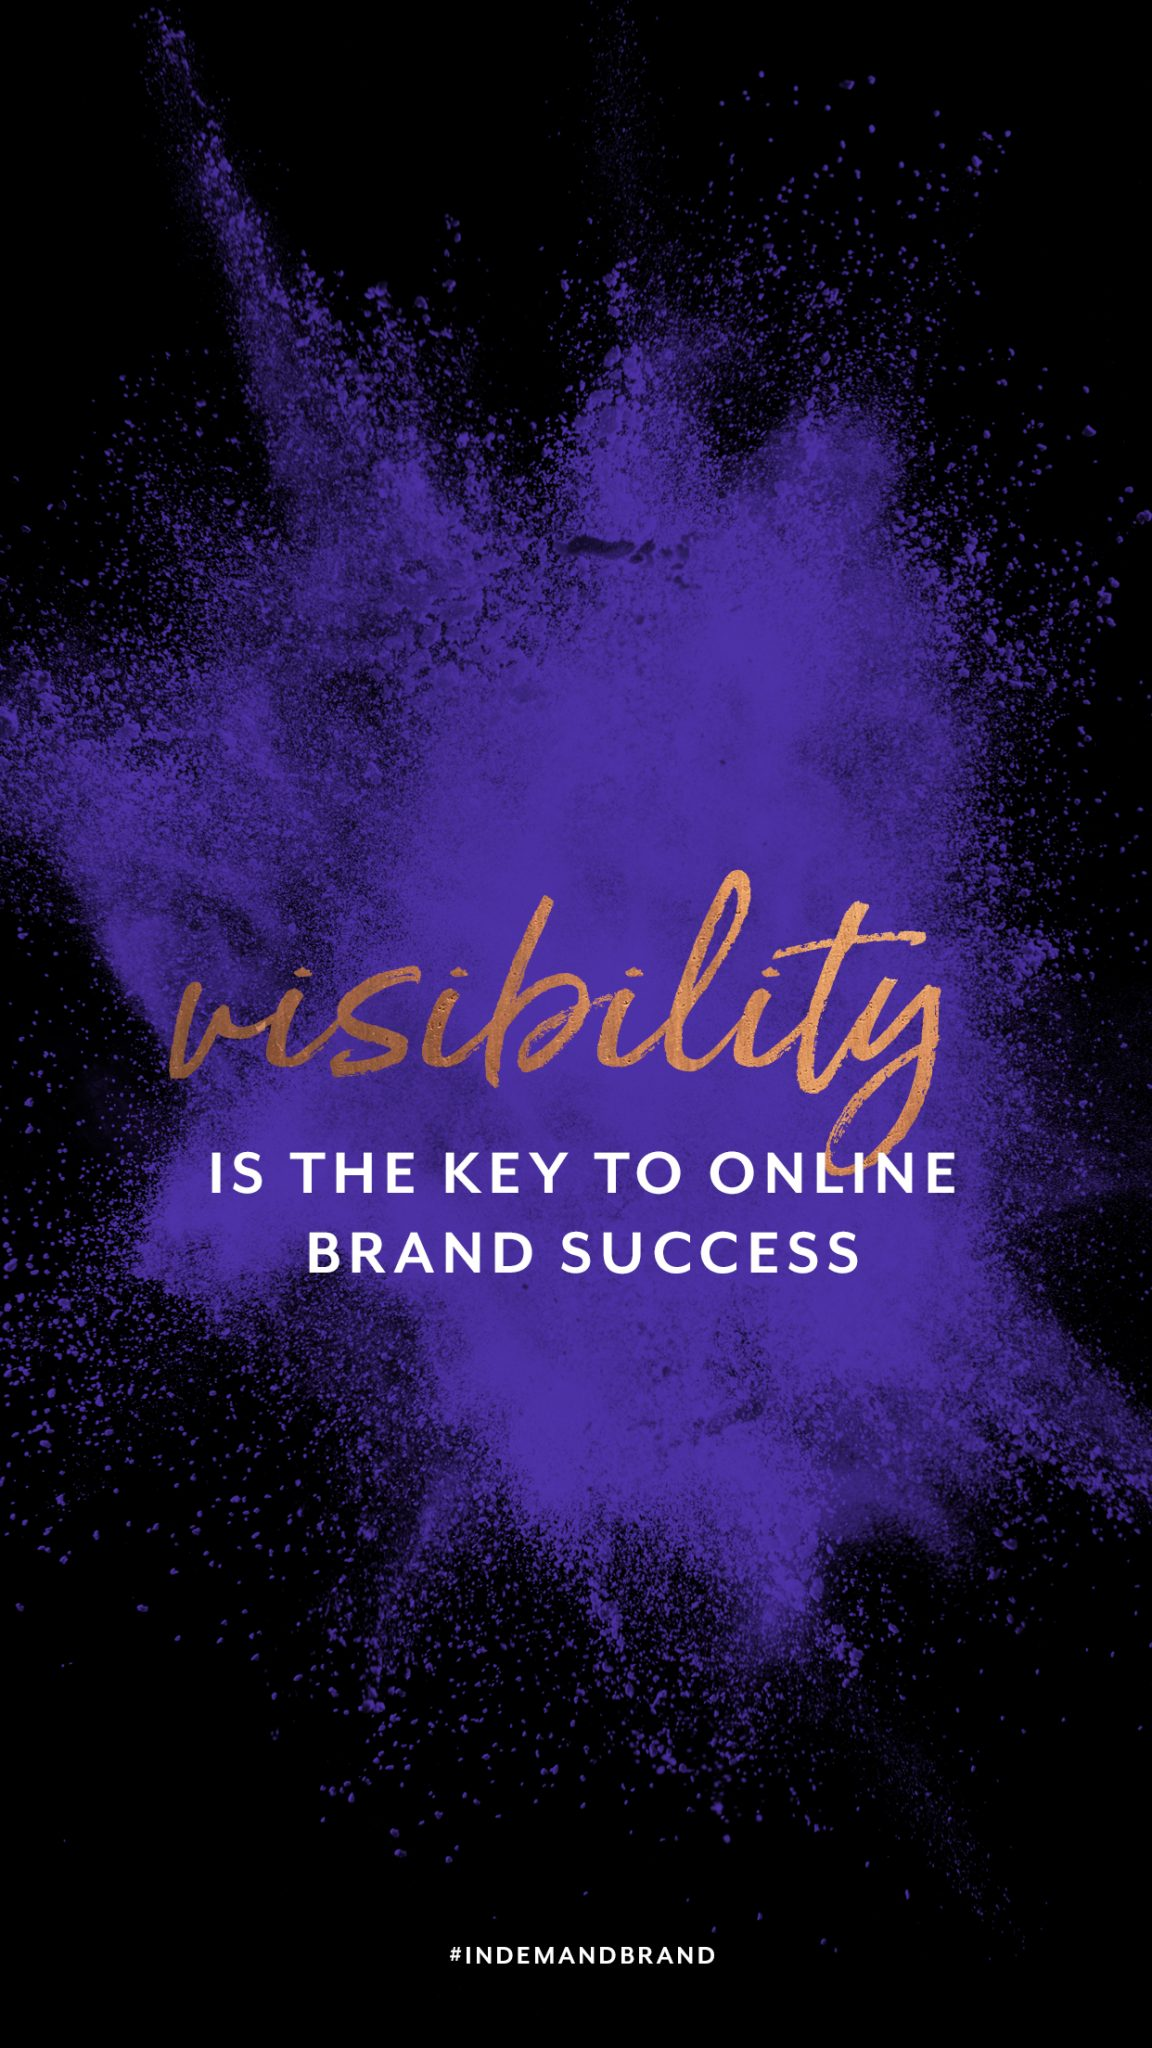 Visibility is the key to online brand success. #InDemandBrand